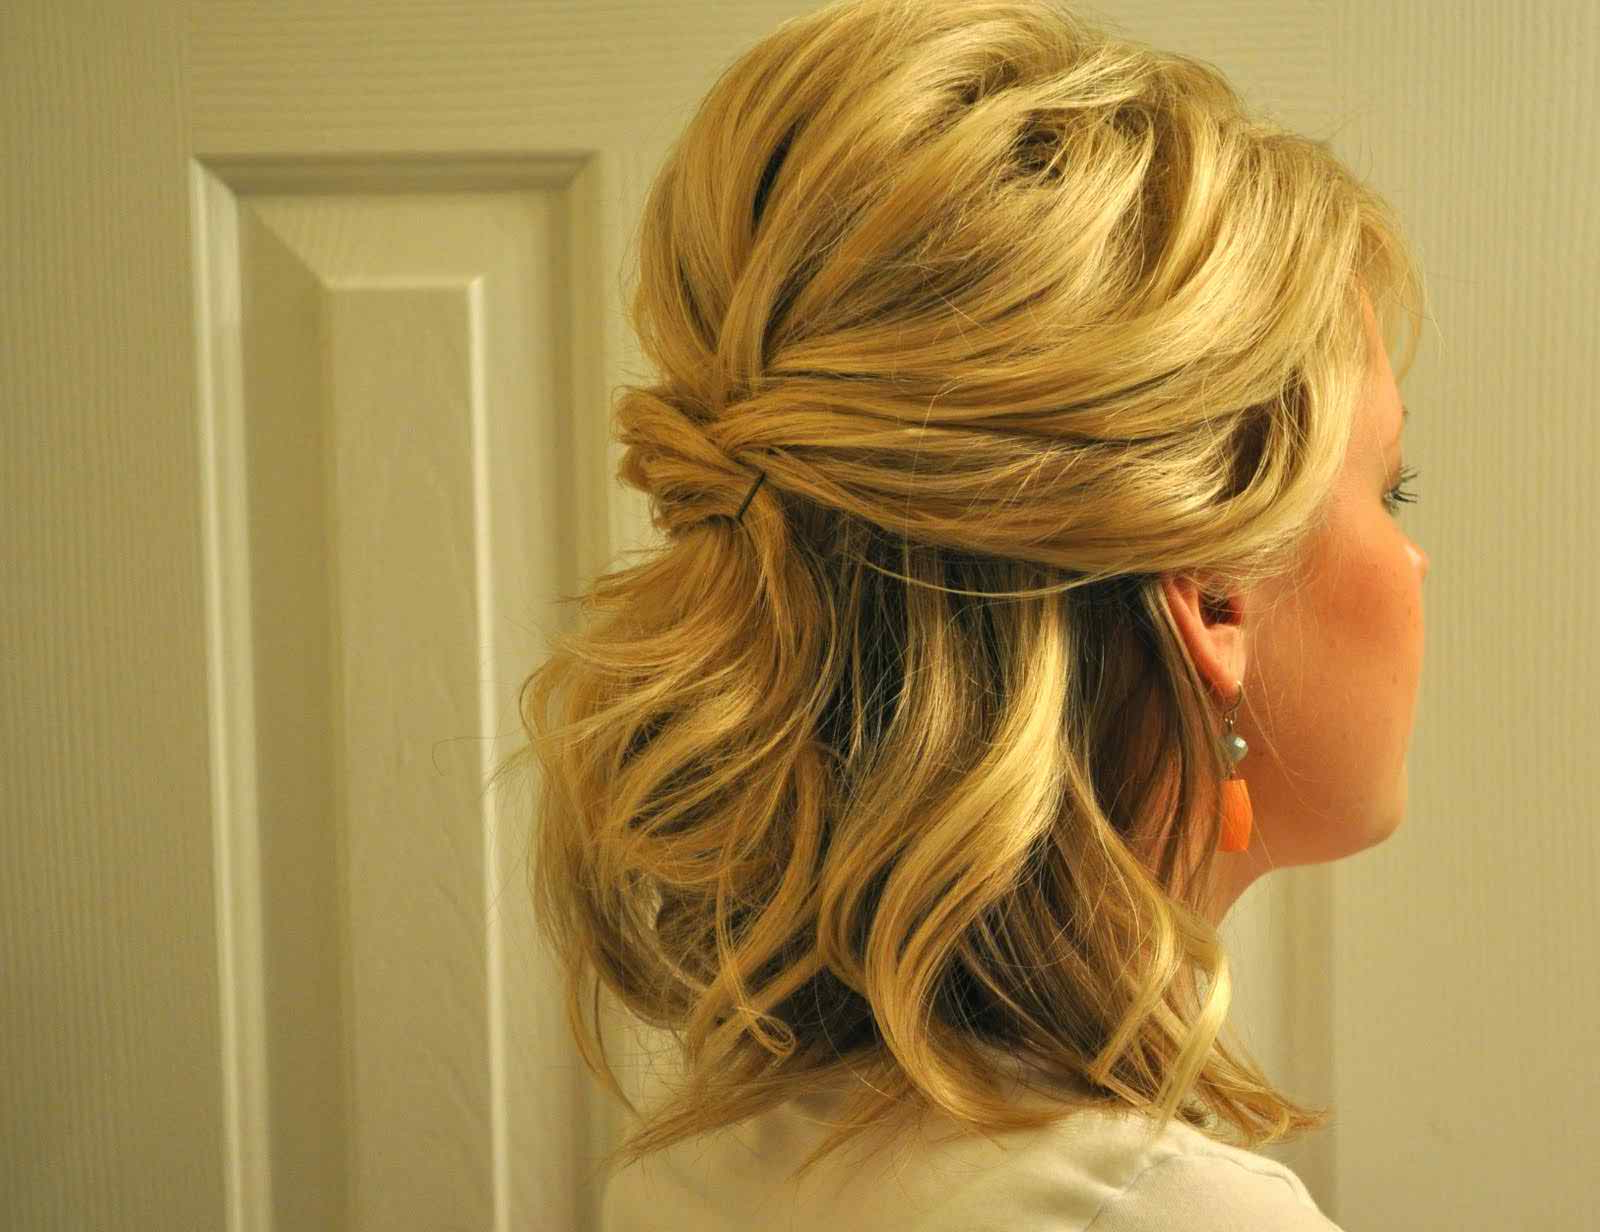 Easy Half Up Hairstyles For Medium Hair – Hairstyle For Women & Man With Regard To Recent Half Short Half Medium Hairstyles (View 3 of 20)